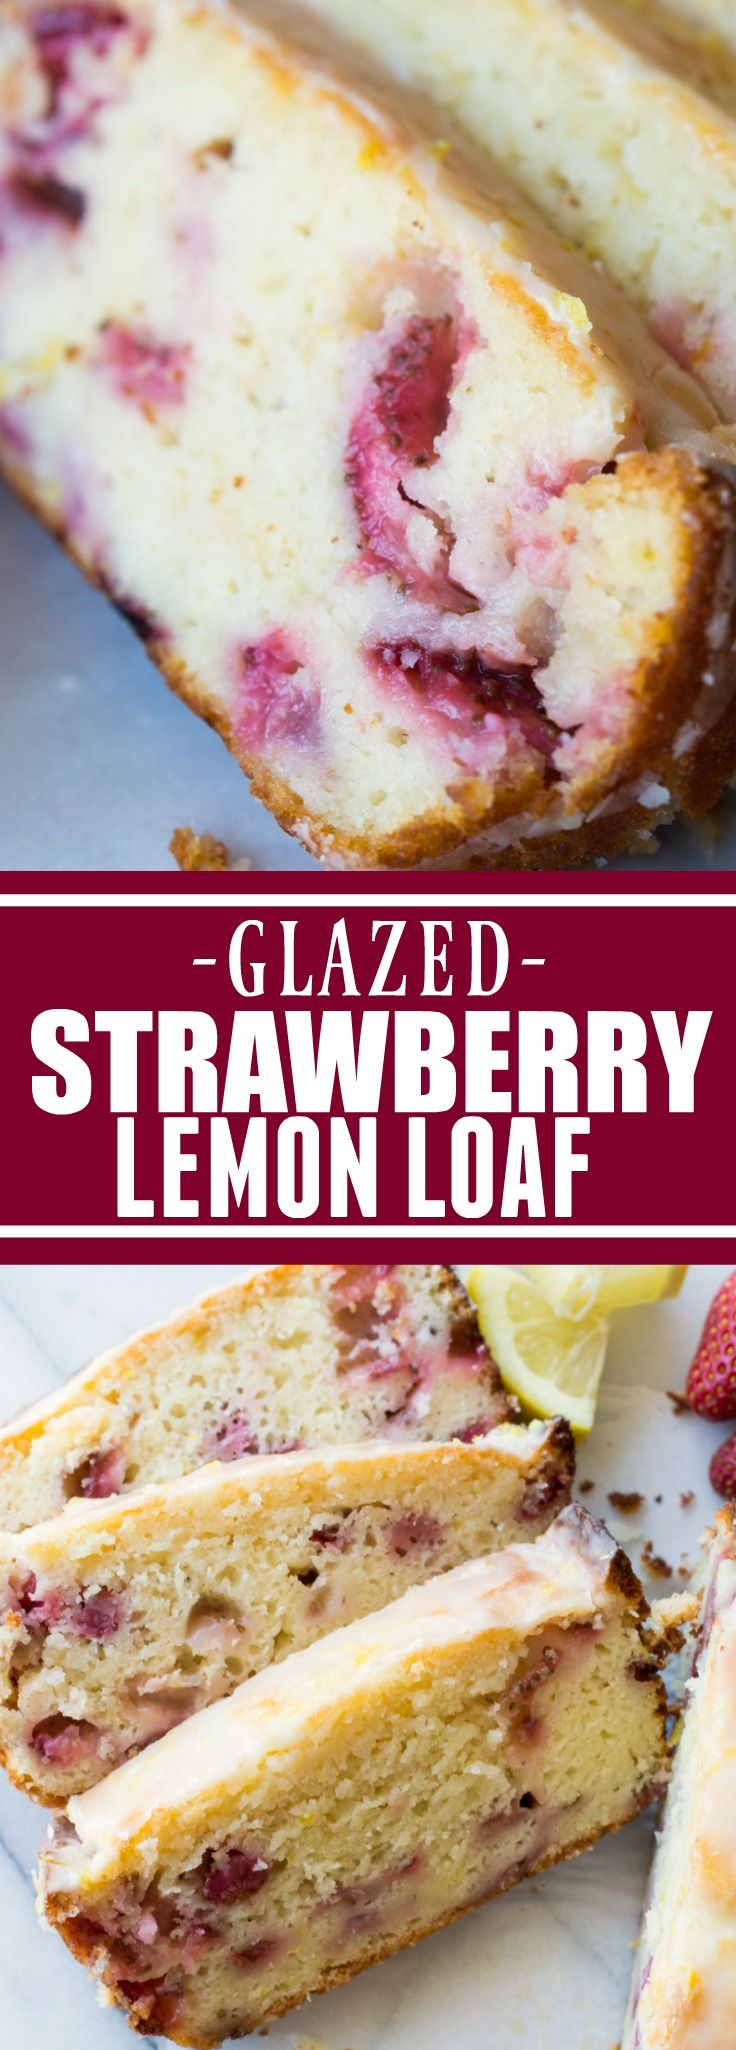 Glazed Strawberry Lemon Loaf! This easy to make loaf cake is loaded with lemon flavor thanks to fresh juice and zest. Plus there's sweet and juicy strawberries baked right in! All topped with a decadent drizzle of a lemon glaze. This bright and sweet loaf cake will be the highlight of your day! #TheBeautyAddict